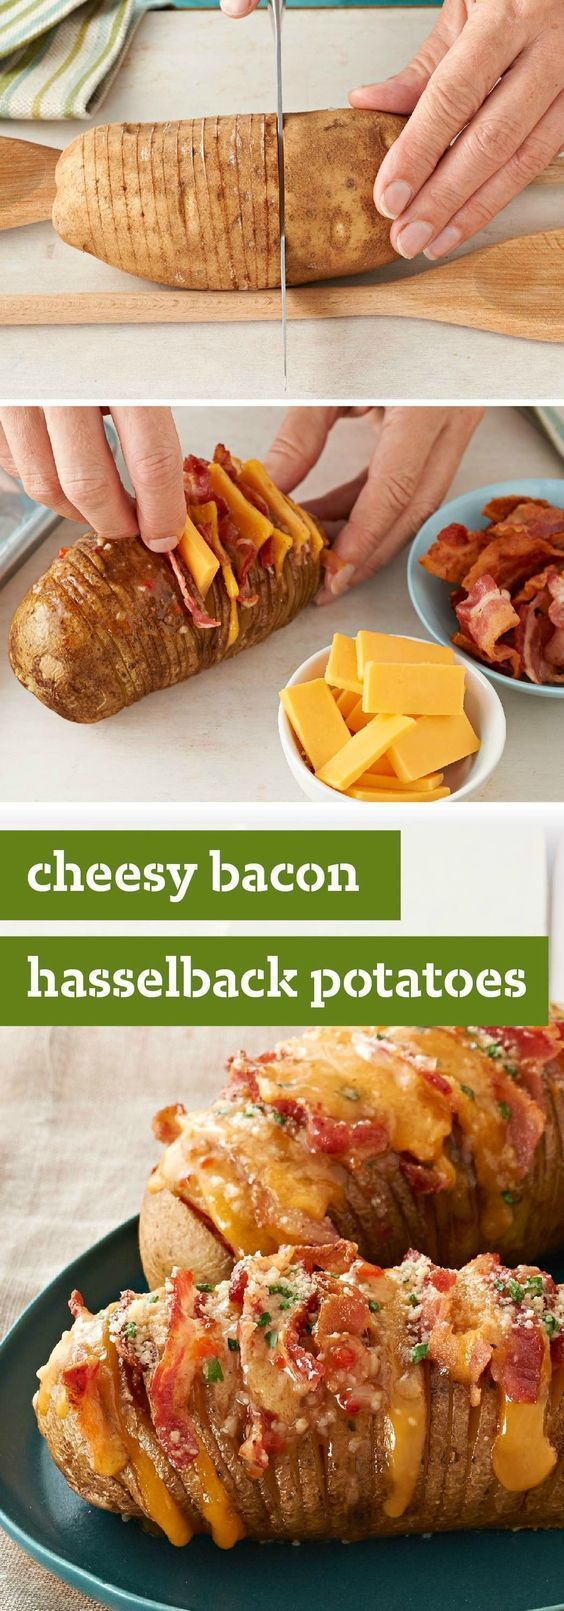 Cheesy Bacon Hasselback Potatoes – Hasselback potatoes always look great on a plate. This cheesy version, made with bacon, cheddar and fresh chives, is sure to be a new favorite.: